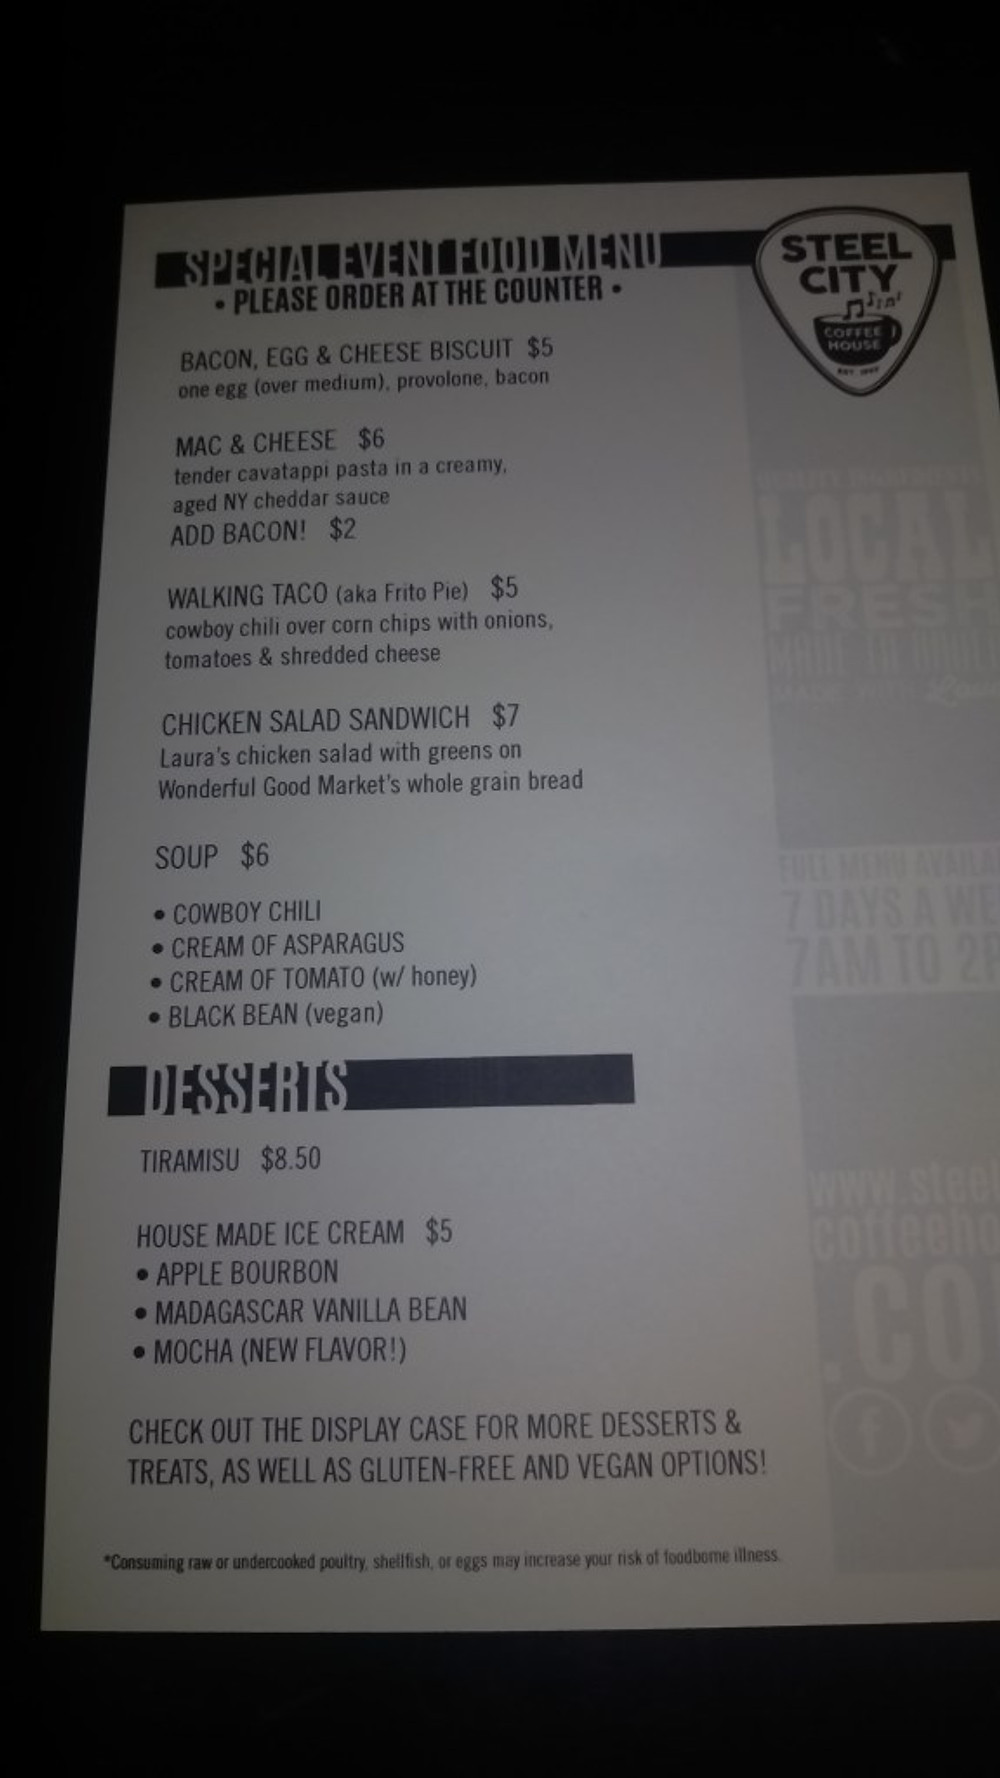 A picture of the menu items available prior to the show.